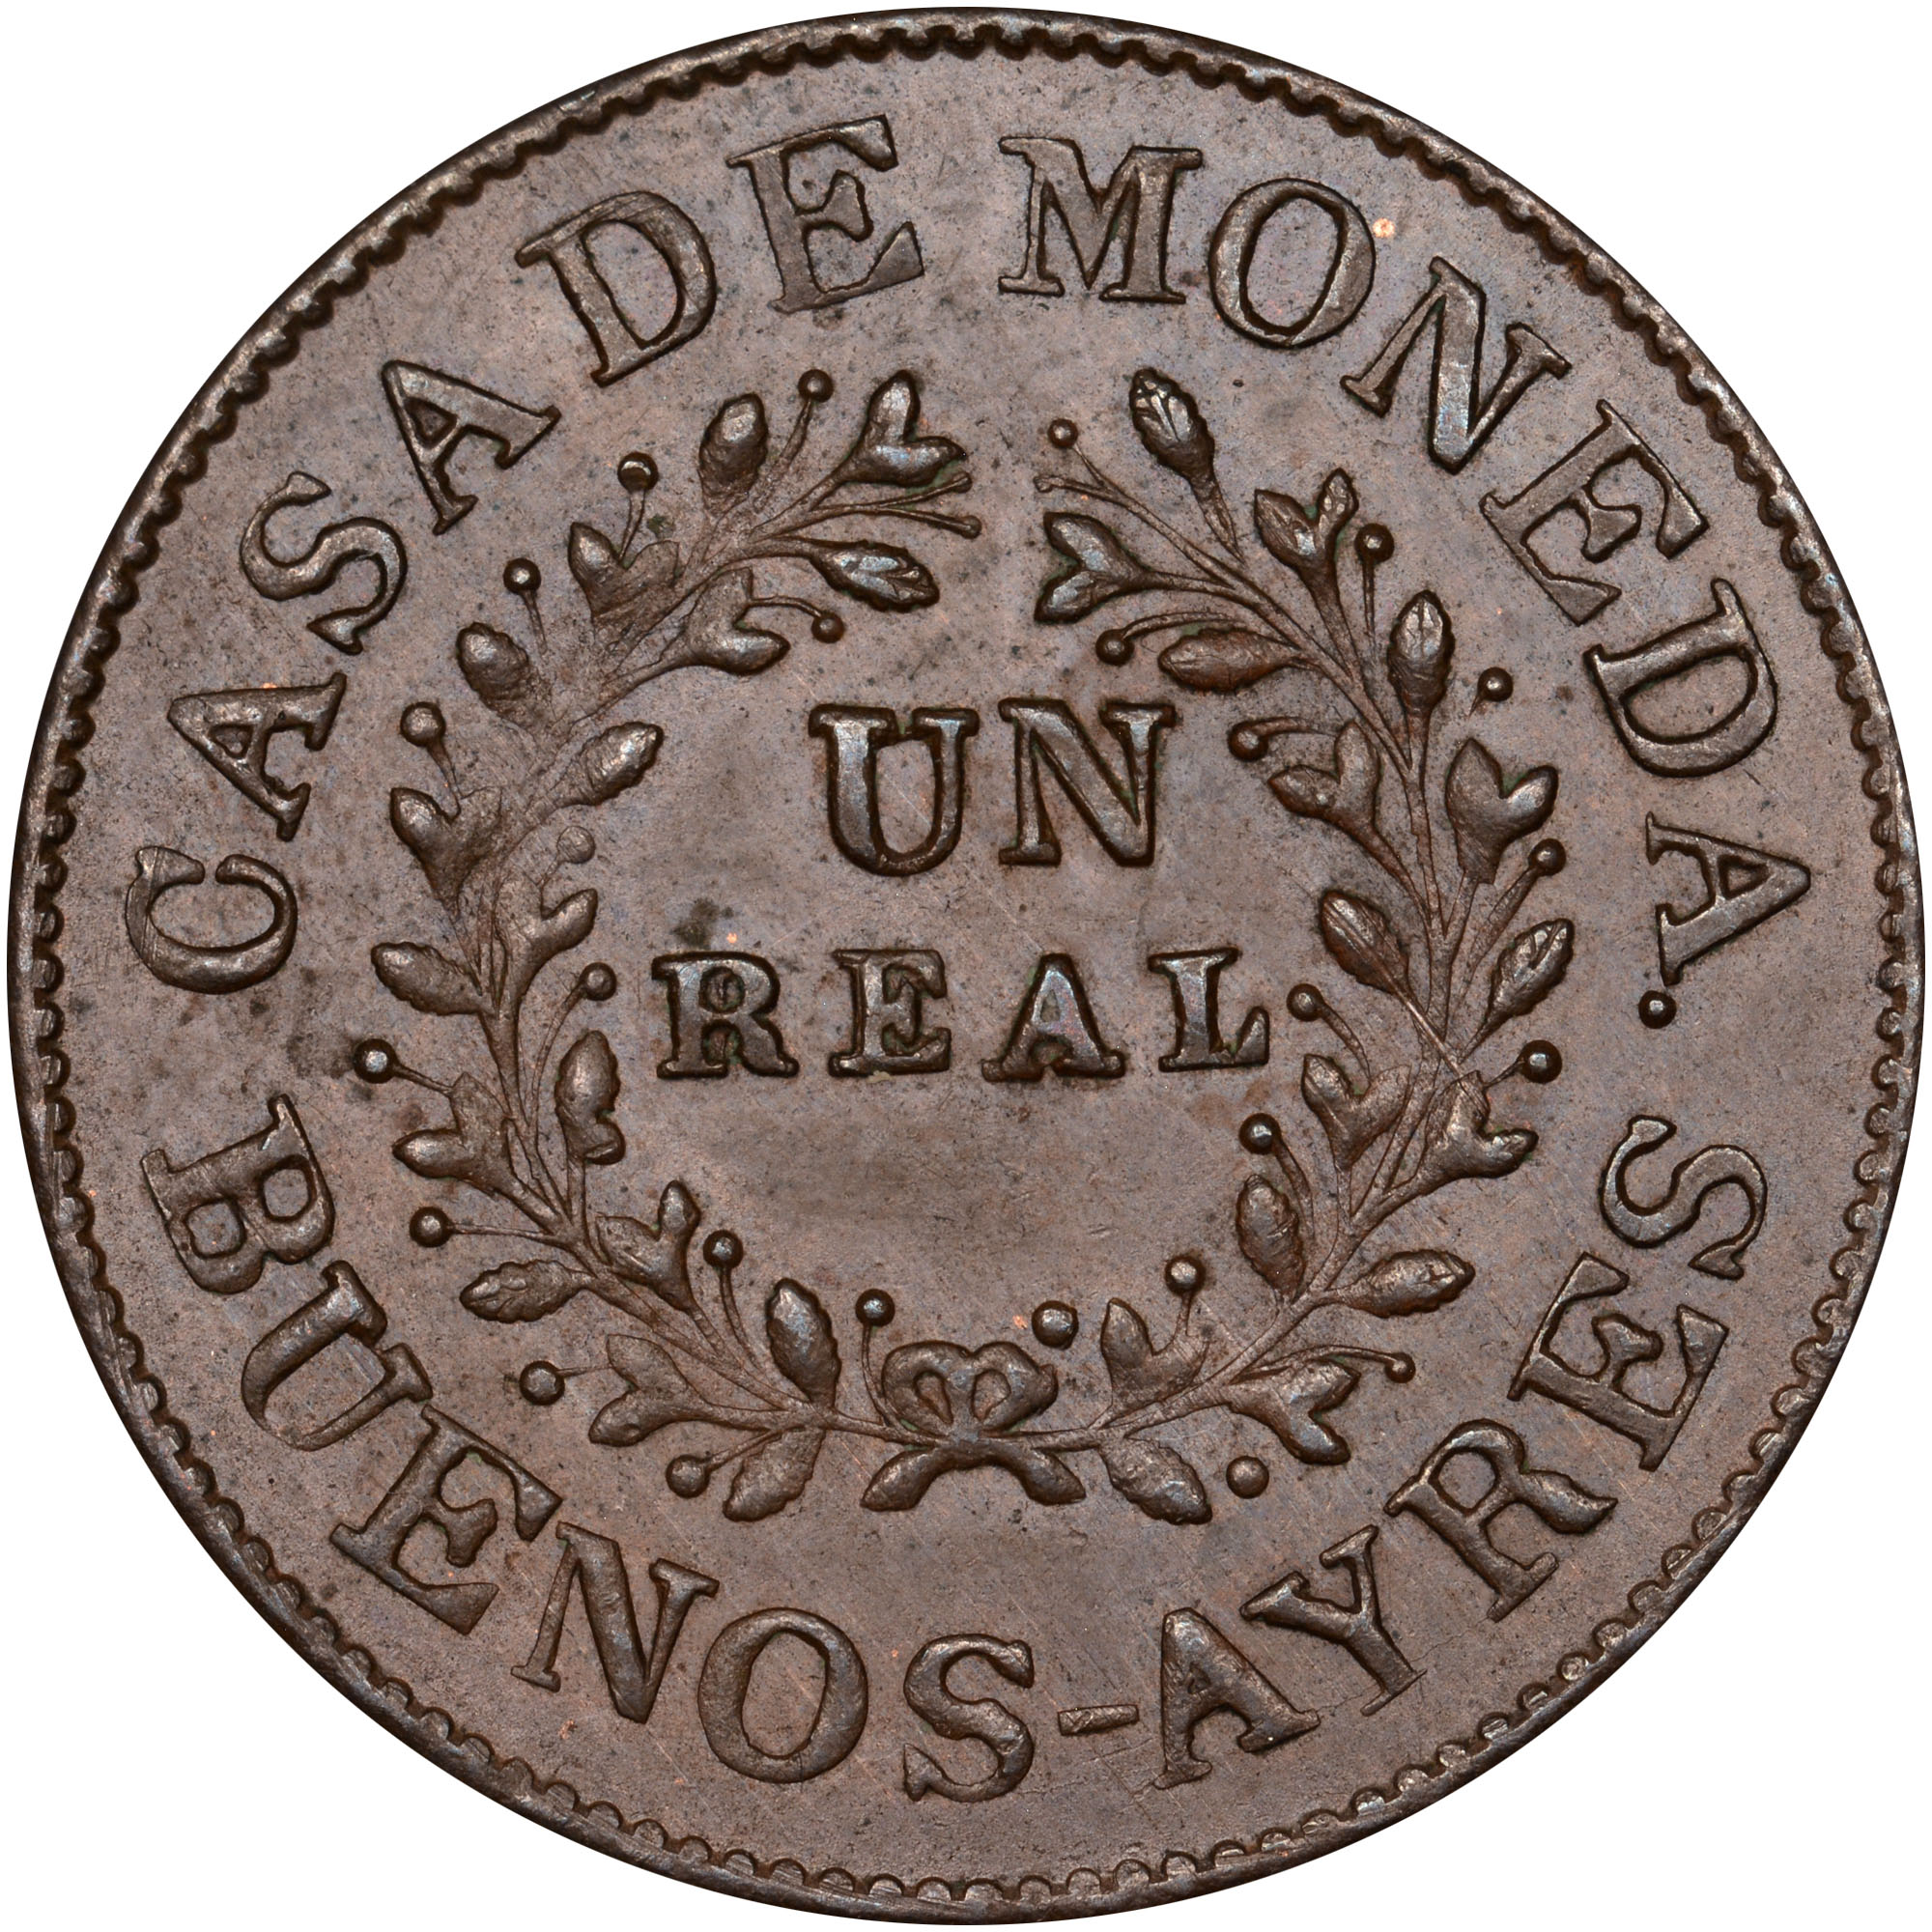 1840 Argentina BUENOS AIRES Real reverse